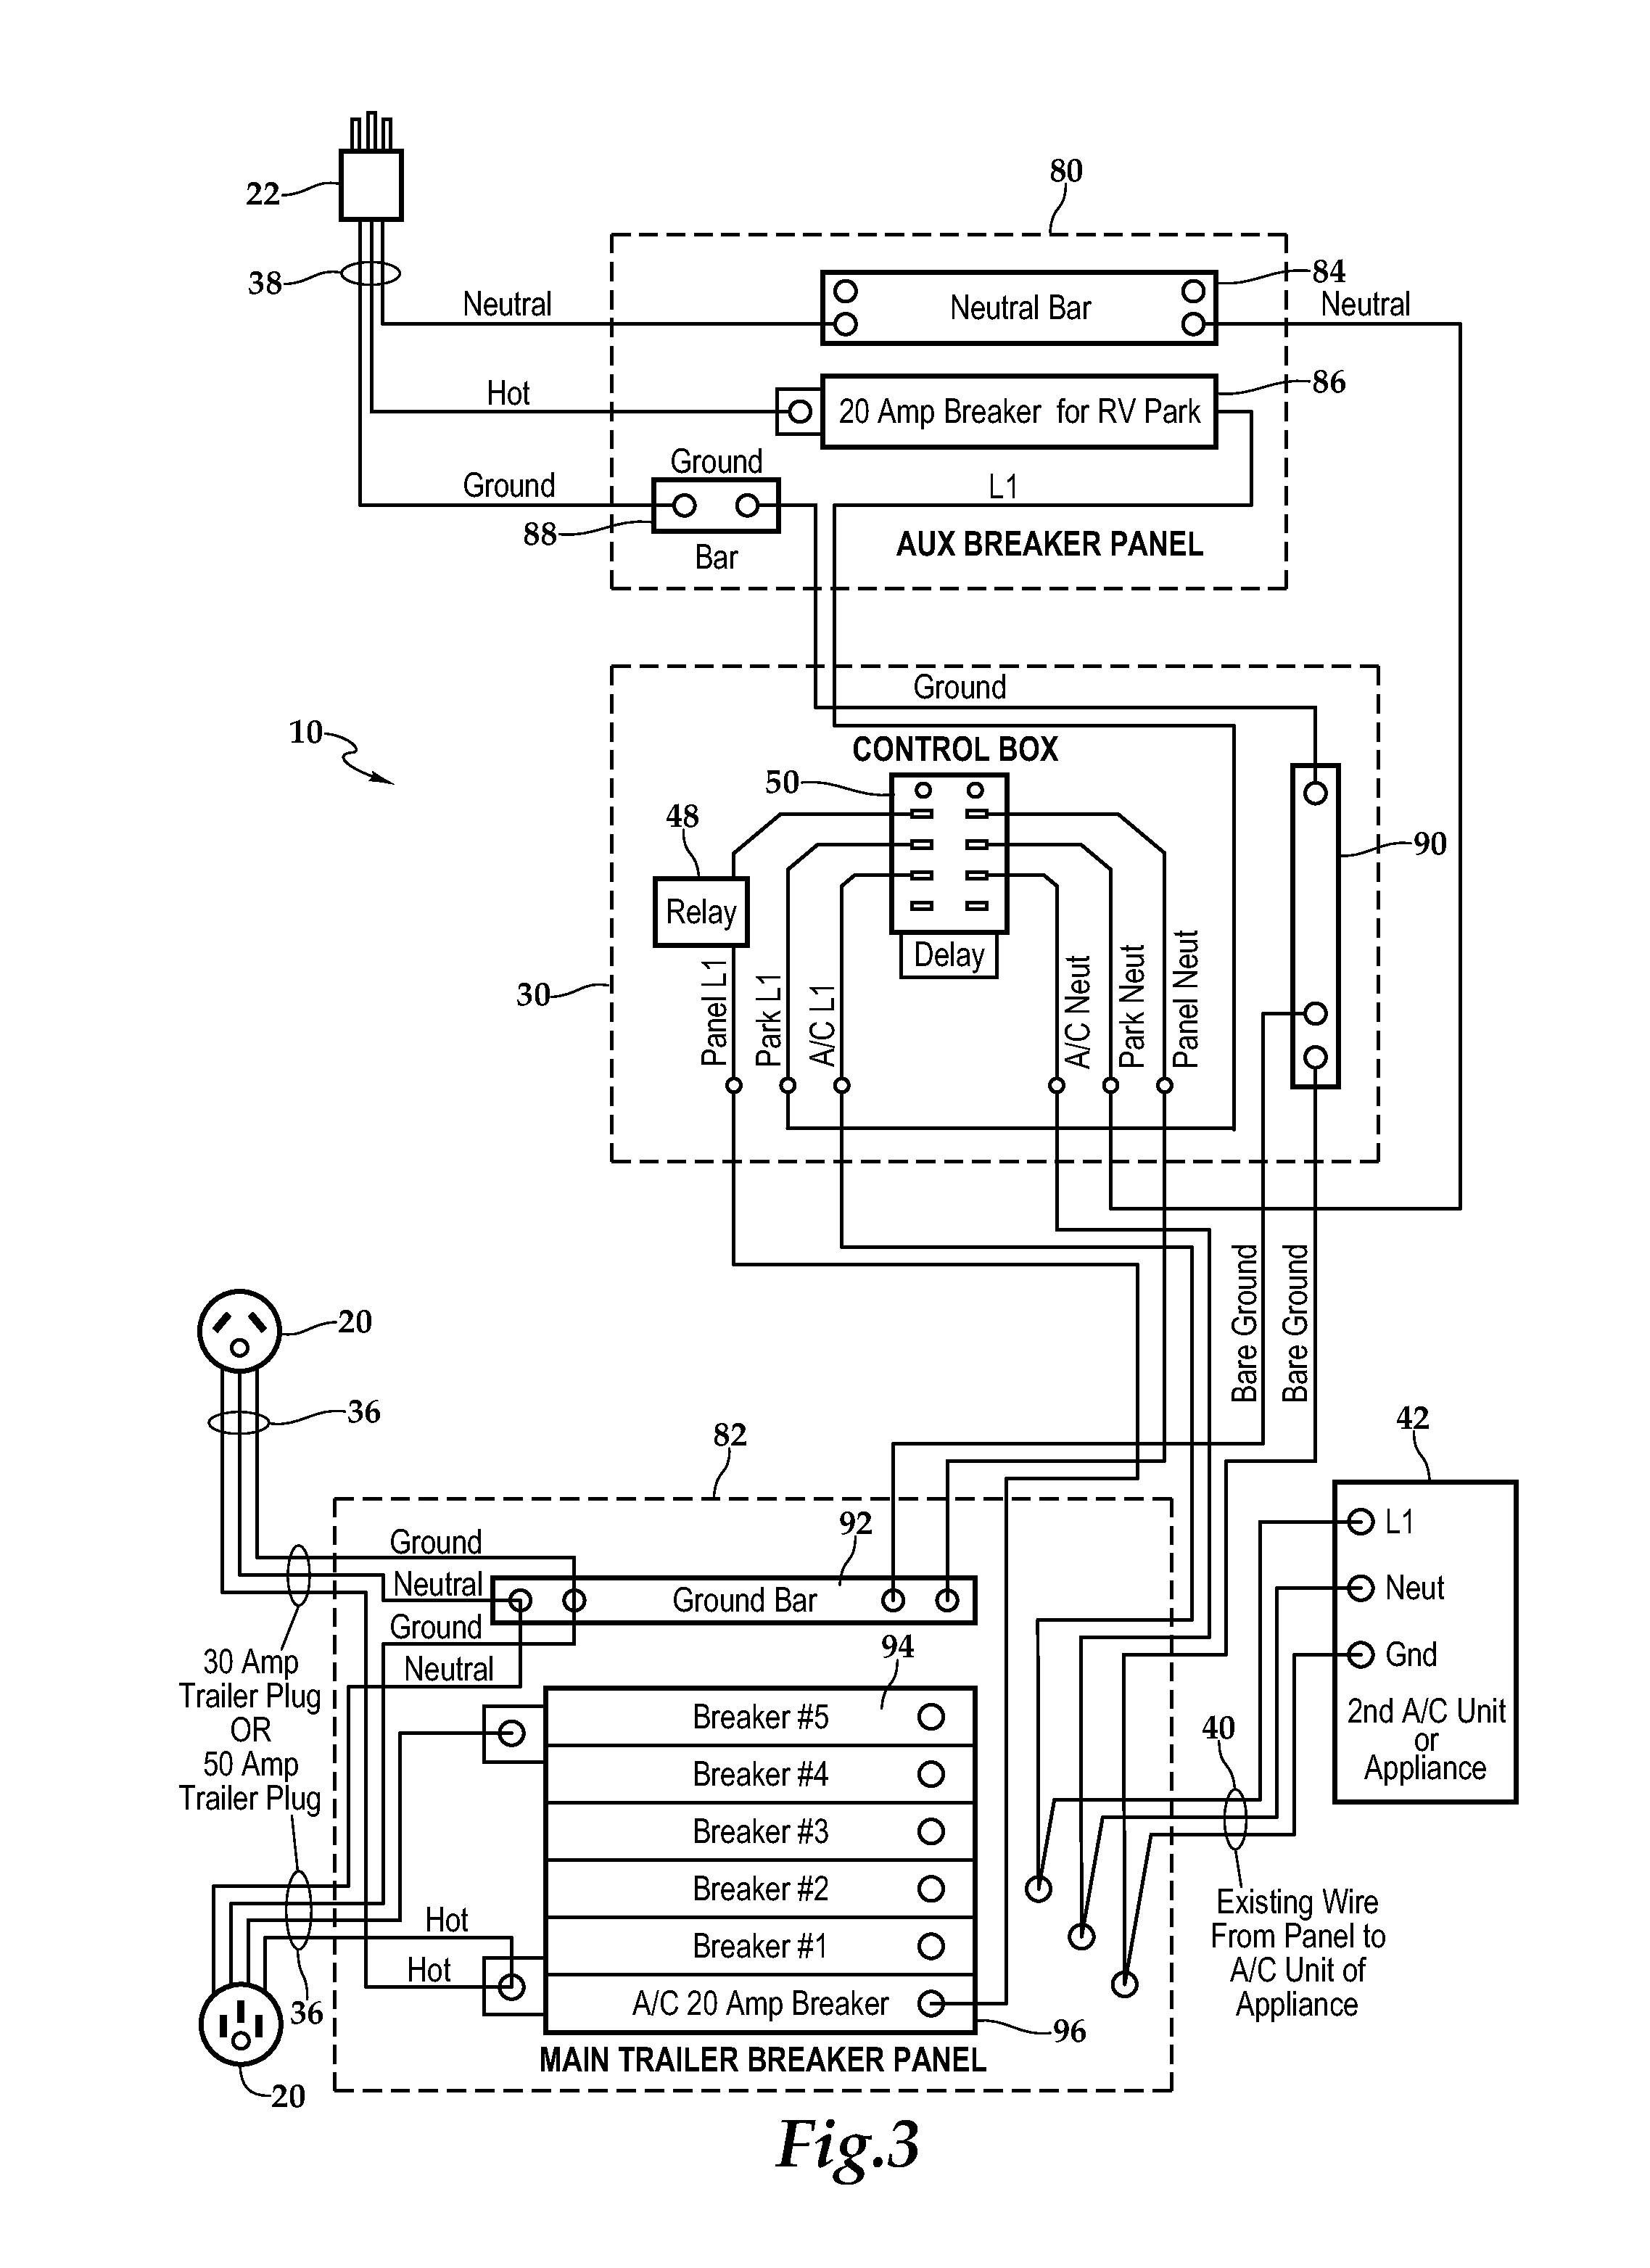 US20120104846A1 20120503 D00002 patent us20120104846 power controller for recreational vehicles wiring diagram rv park at gsmx.co